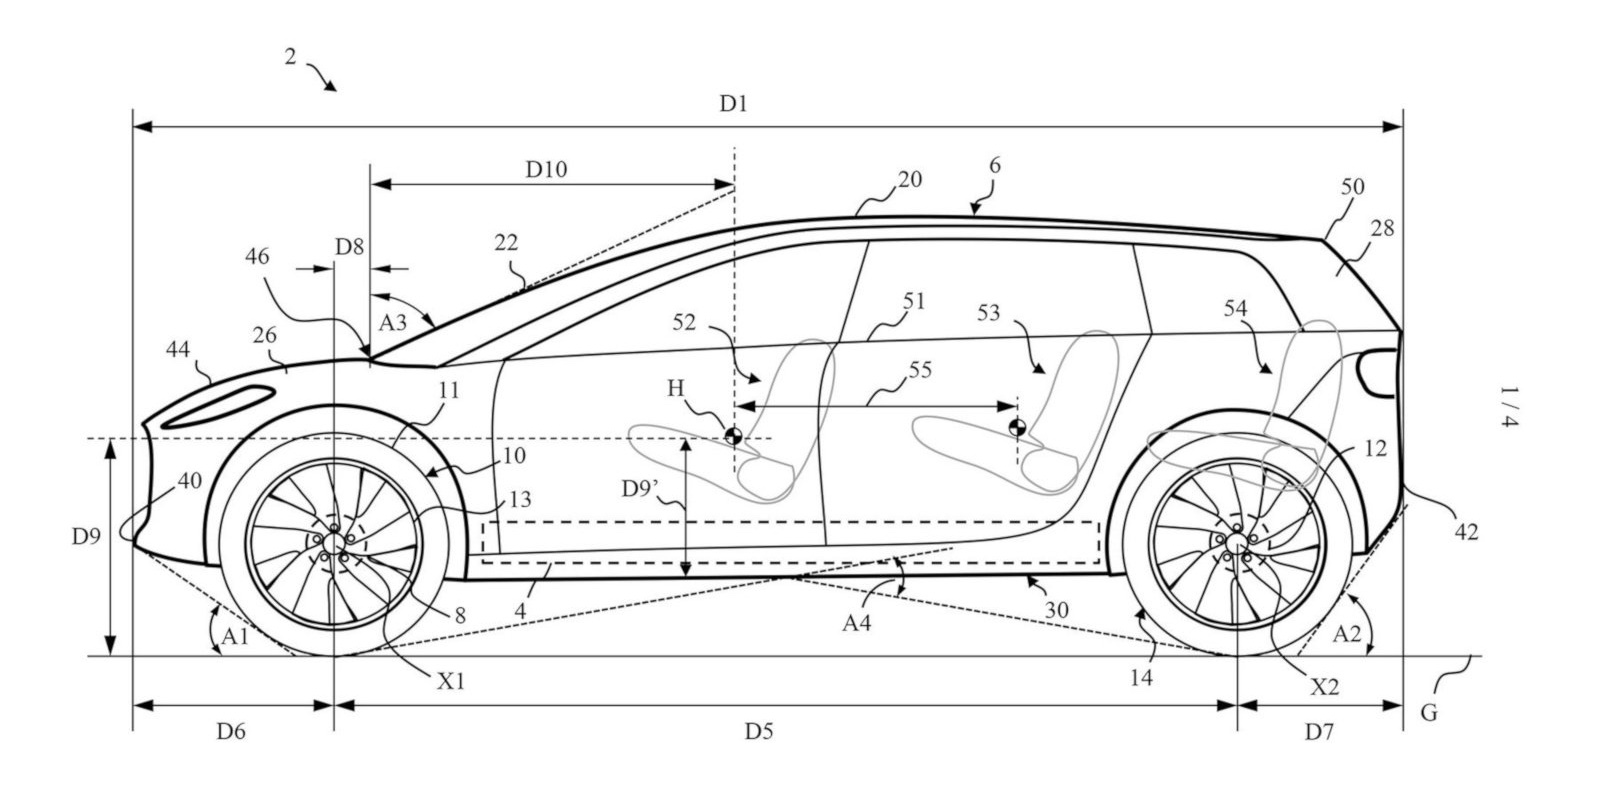 Flipboard: Dyson electric car patents reveal possibilities